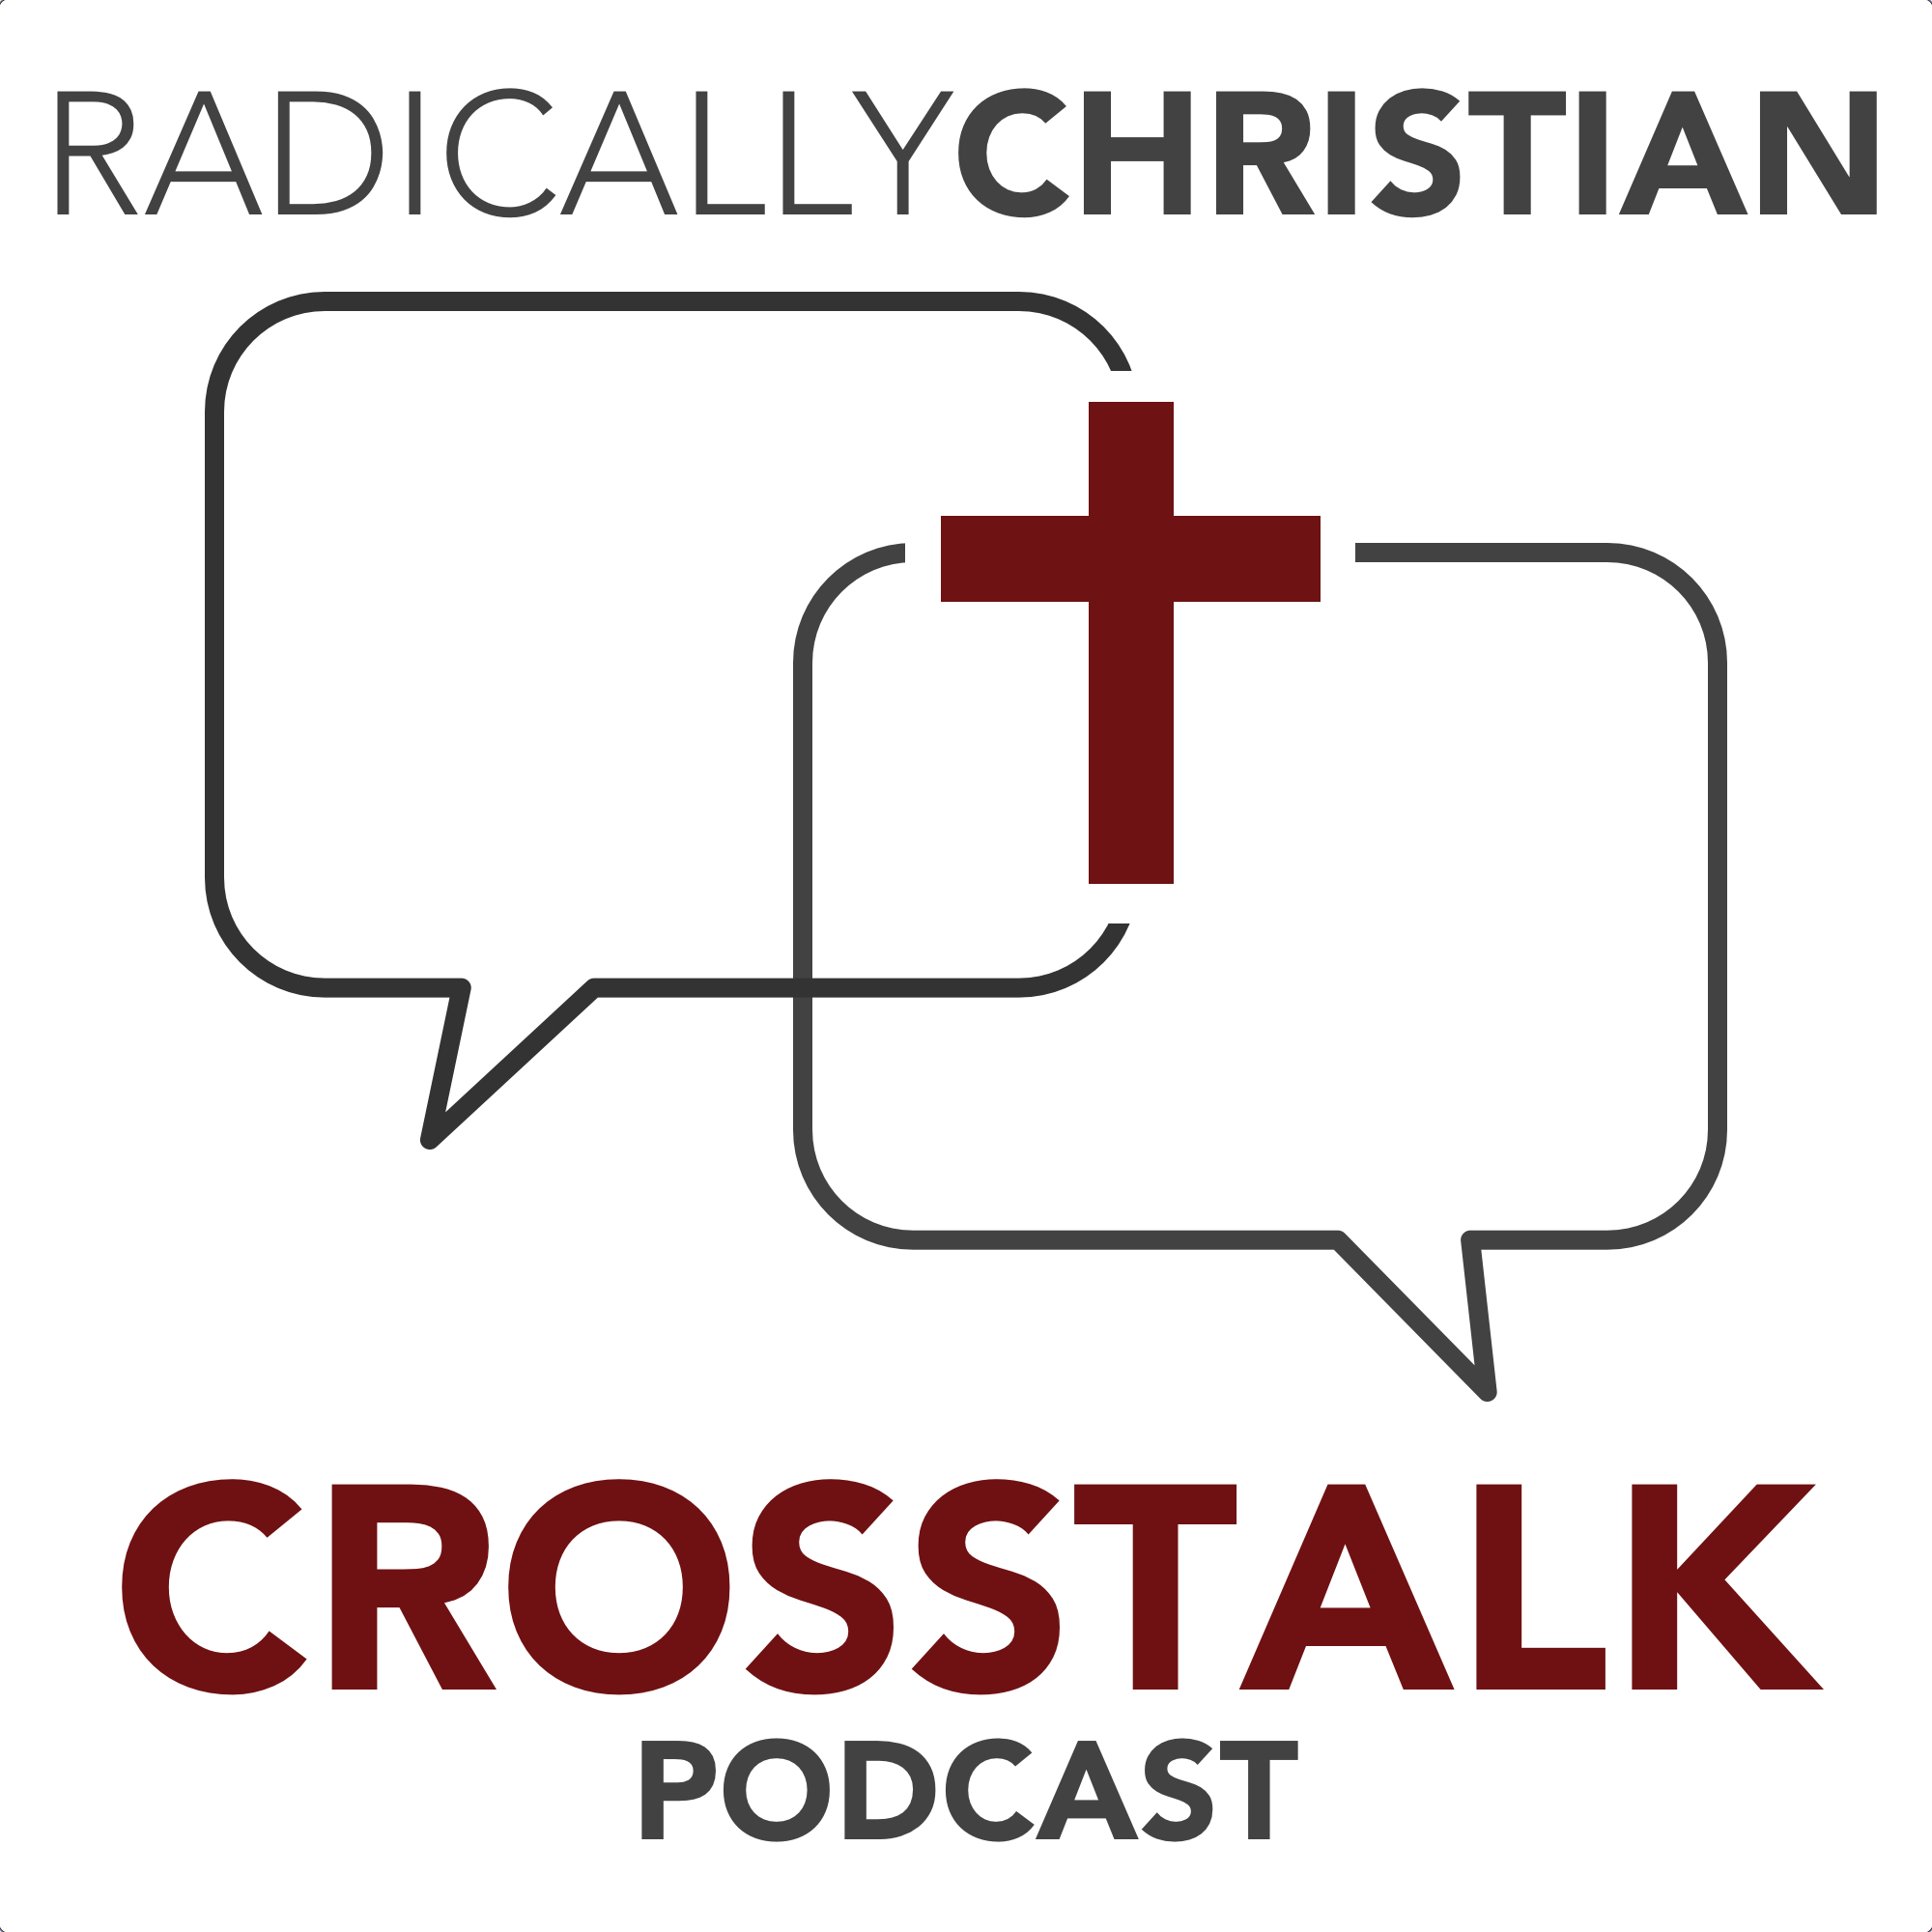 hight resolution of radically christian crosstalk podcast christianity church of christ bible discussion by wes mcadams christian blogger and preaching minister for the